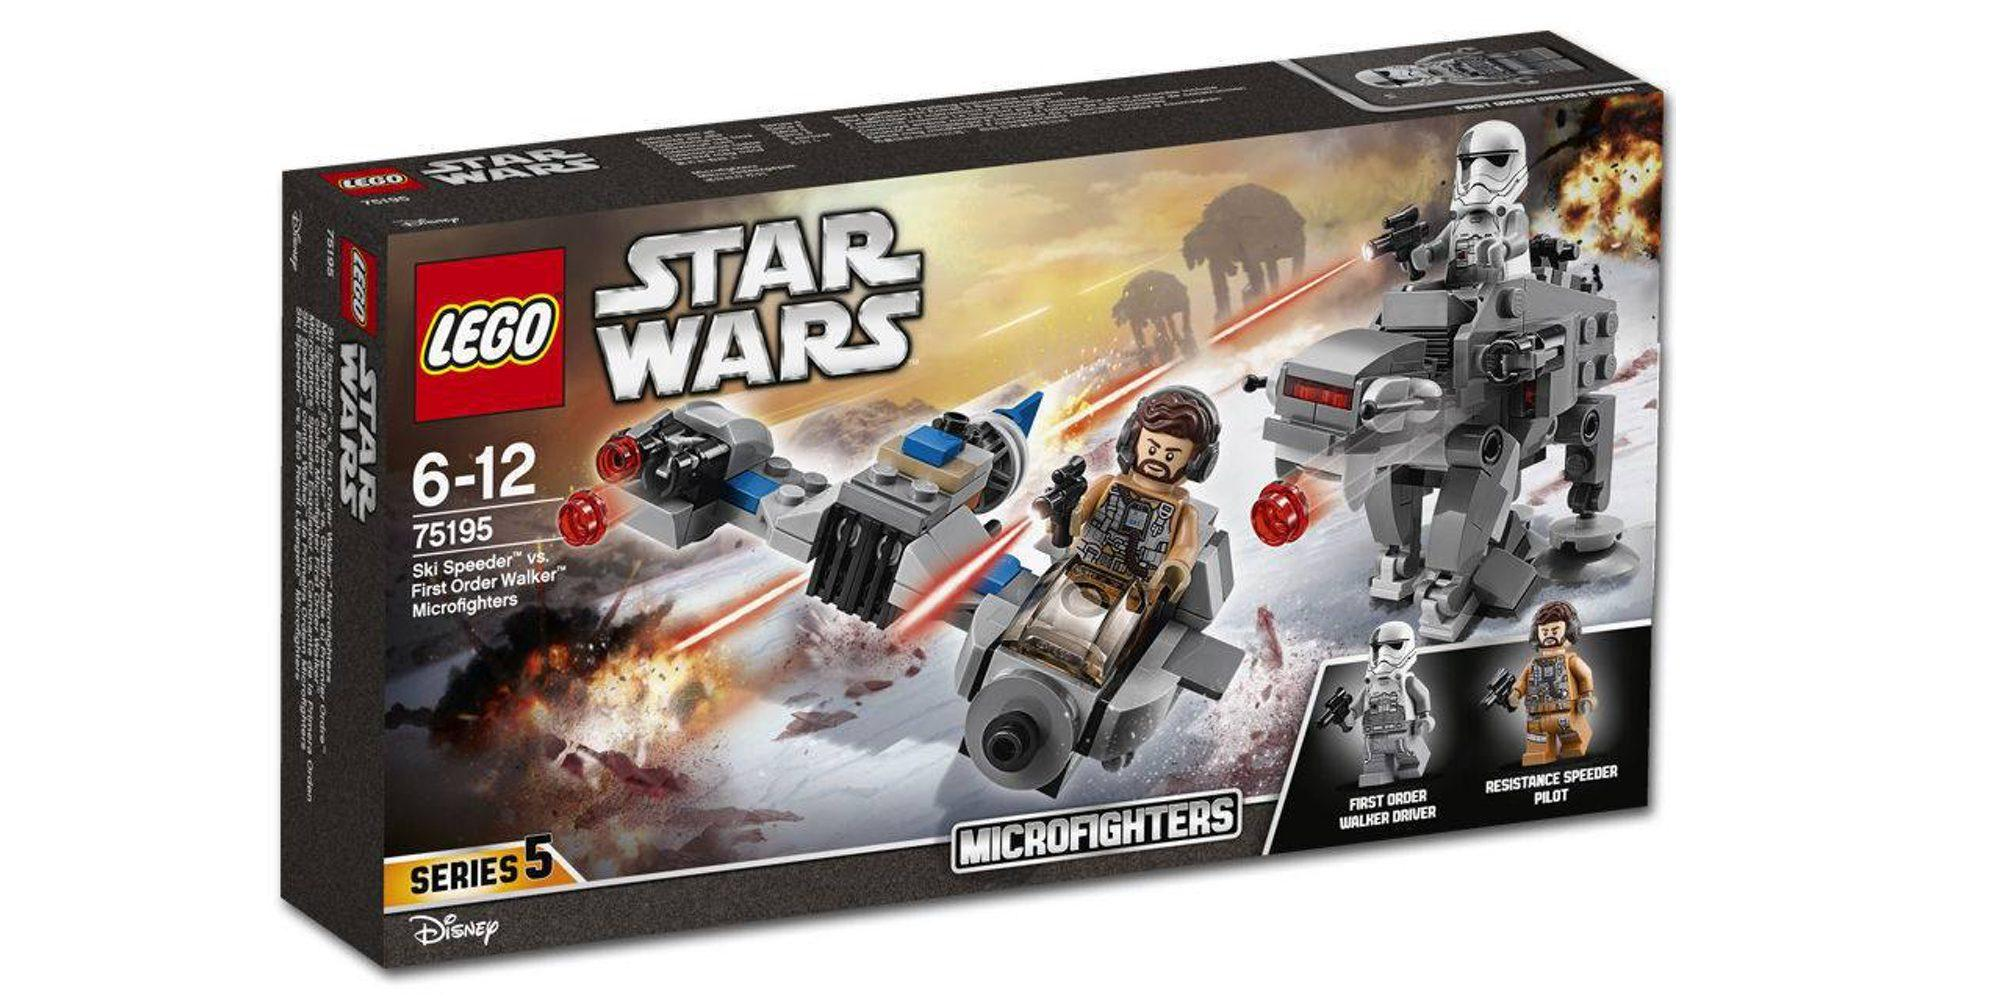 Lego Star Wars Ski Speeder vs. First Order Walker Mic (75195)